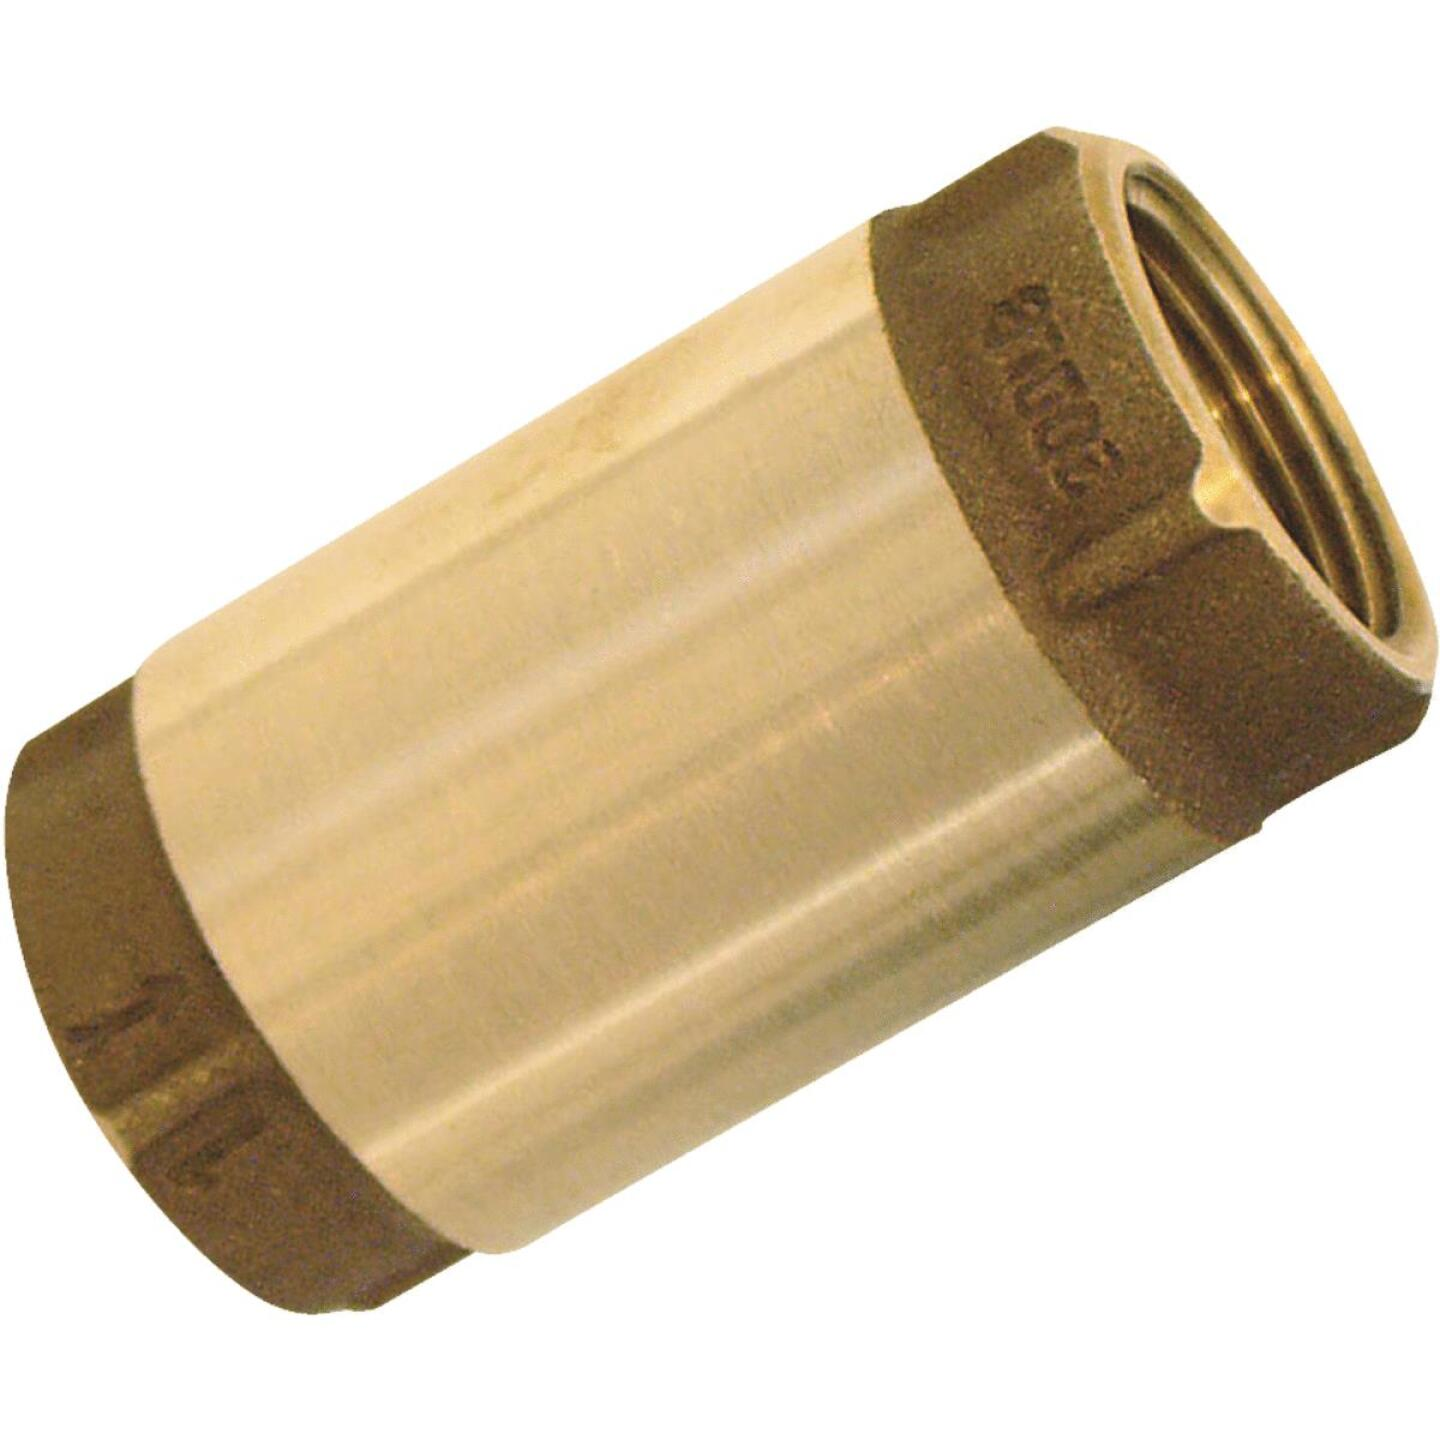 Simmons 1-1/4 In. Bronze Female Thread Check Valve Image 1